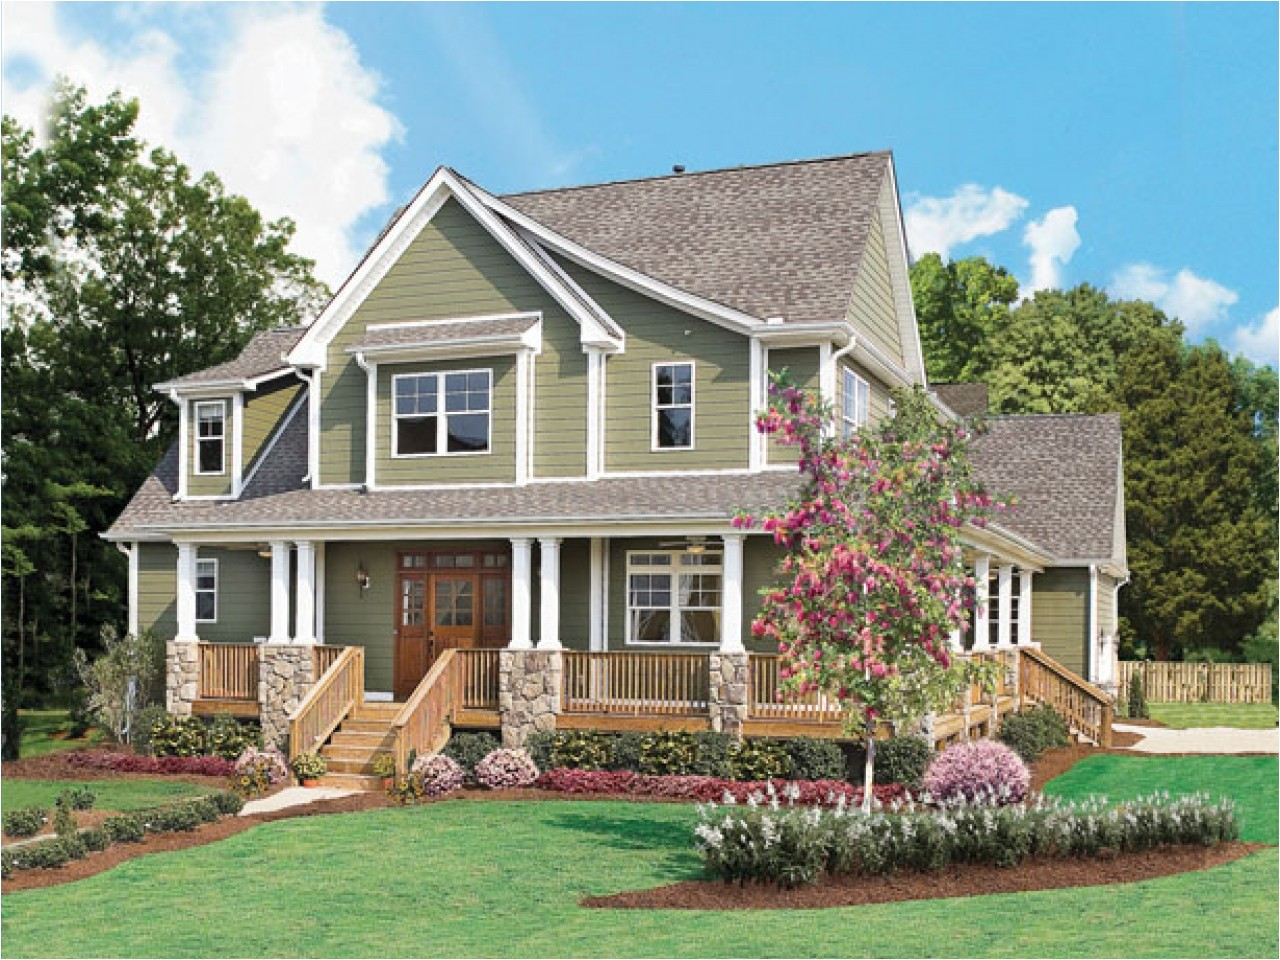 64b76ad9b0b55e23 french country house plans country style house plans with porches